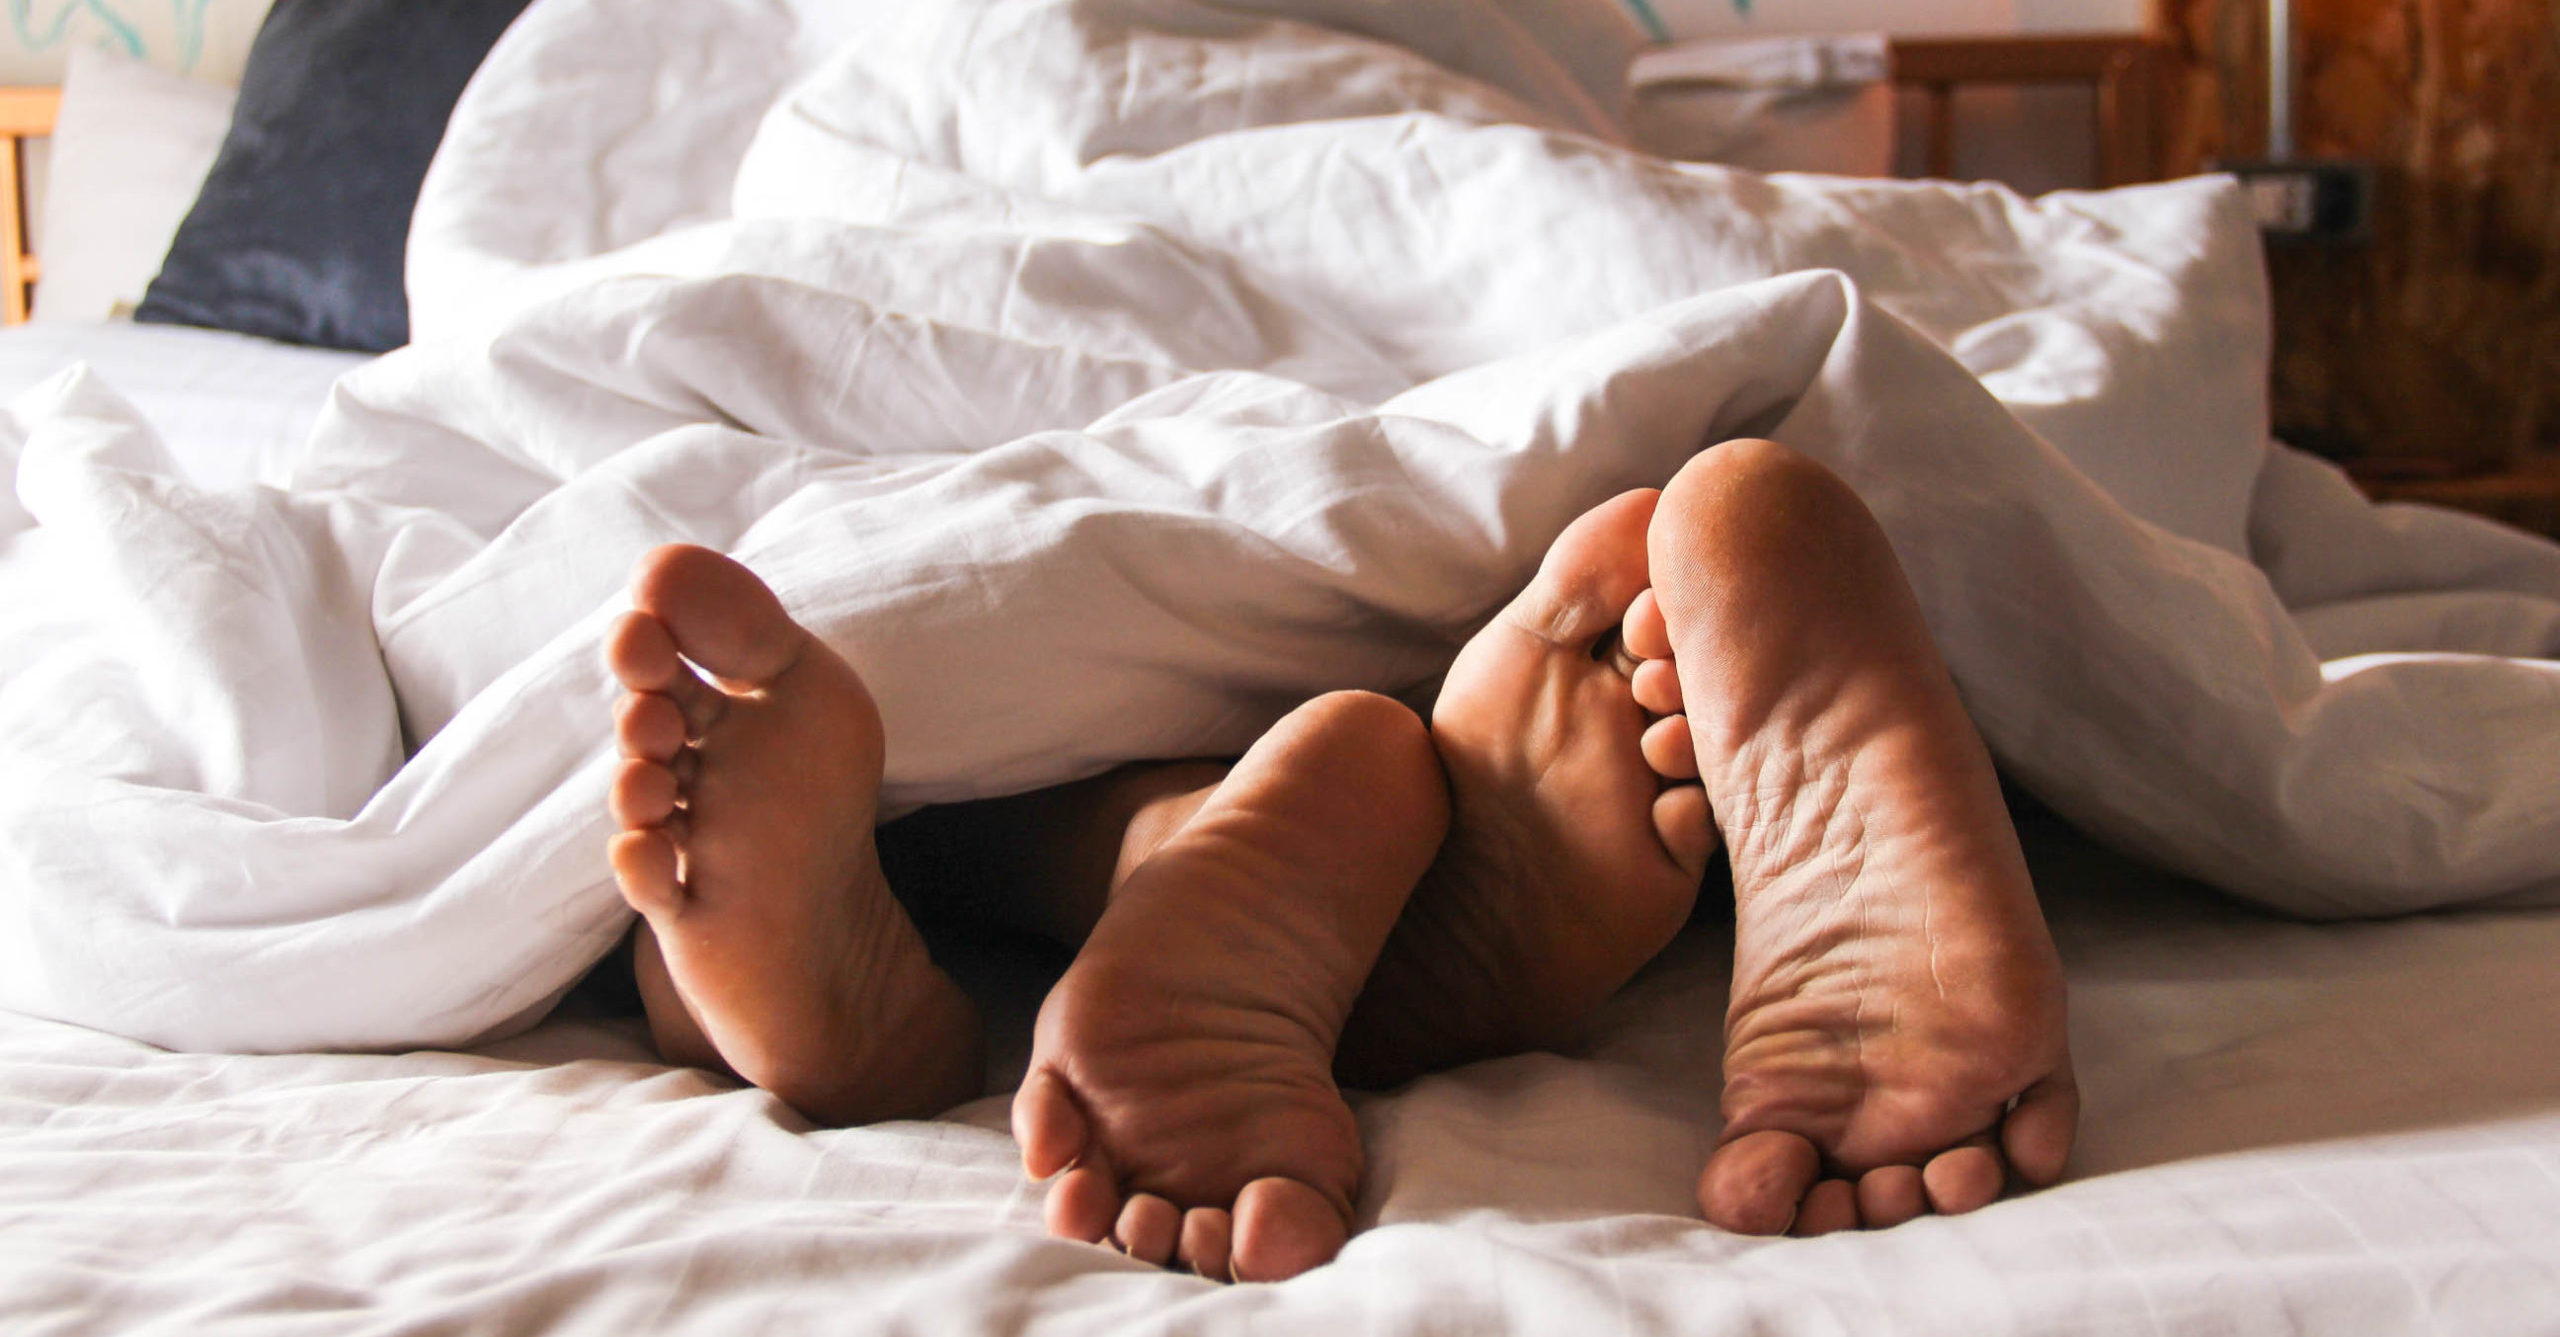 Sex inside your home with someone from a different household is ILLEGAL from today